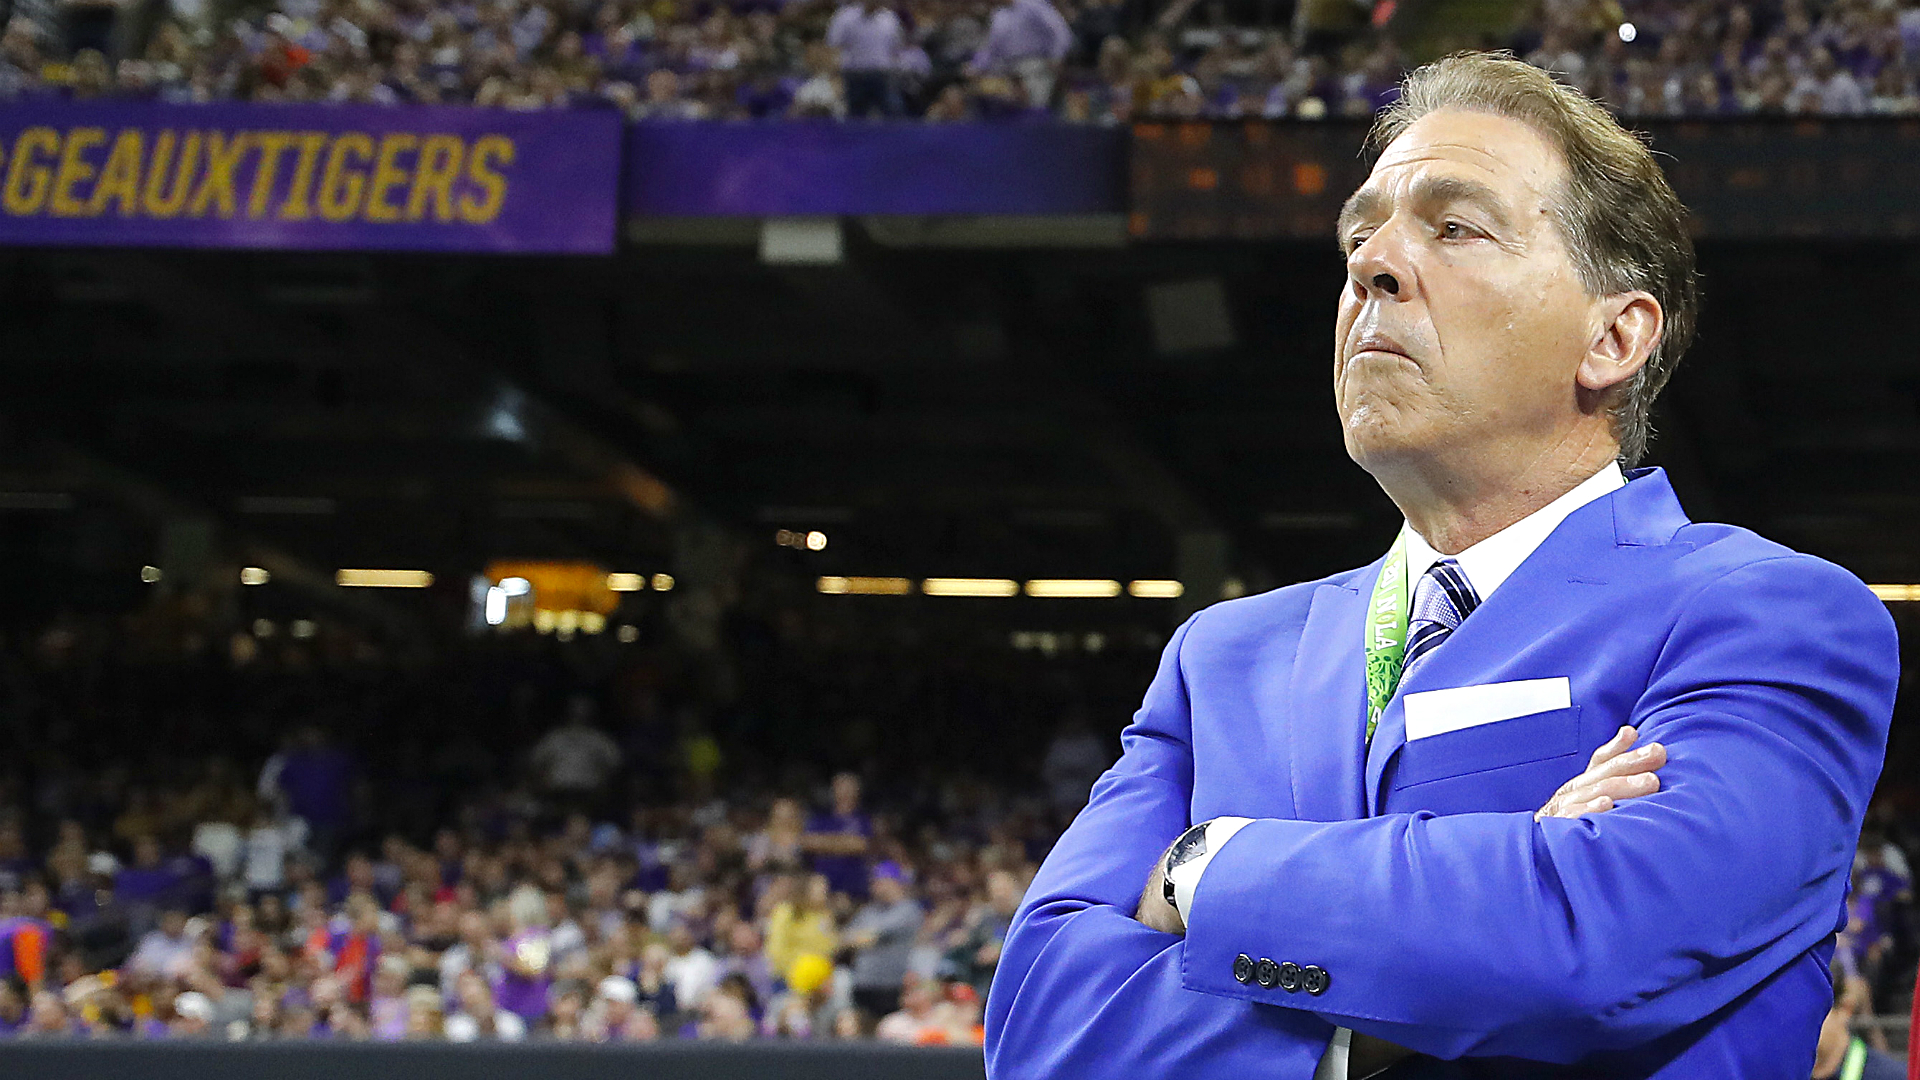 Nick Saban was on the College Football Playoff pregame show, and Twitter had jokes